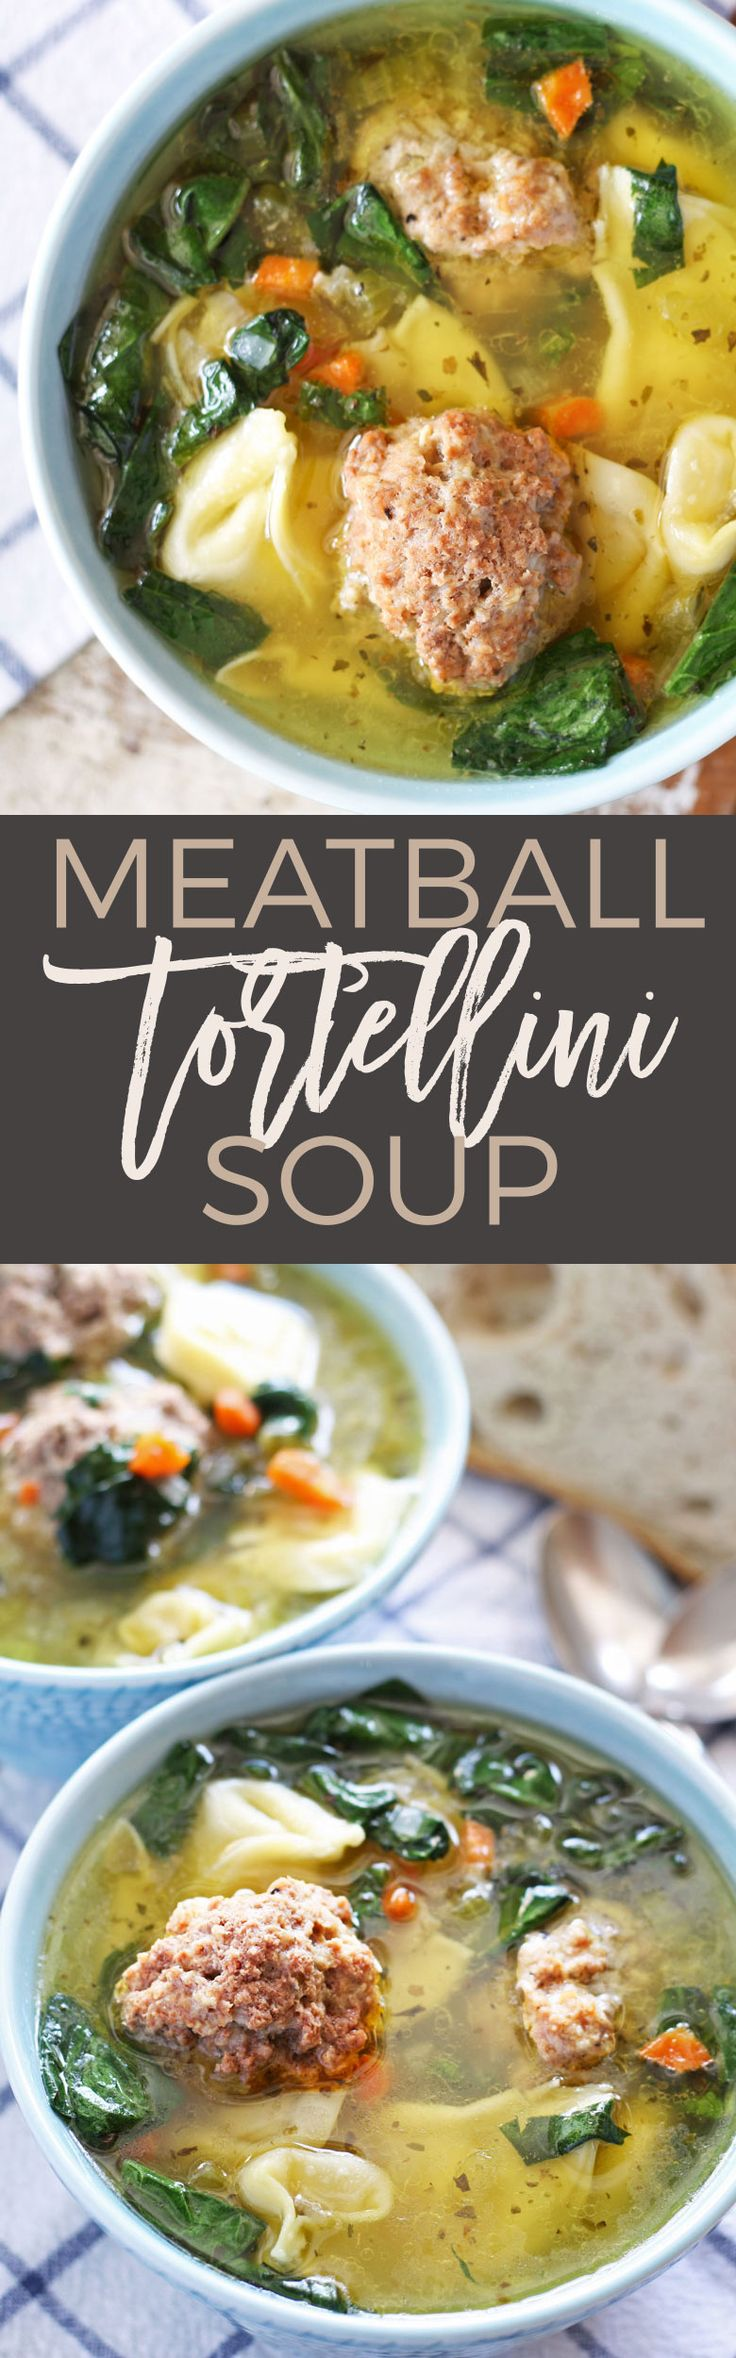 This easy meatball tortellini soup is hearty and perfect for lunch or dinner! Made with store-bought tortellini and giant meatballs! | honeyandbirch.com | meatball | homemade meatballs | tortellini | winter | recipe | recipes | Italian | easy | healthy | beef | pork | spinach | best | favorite | soup